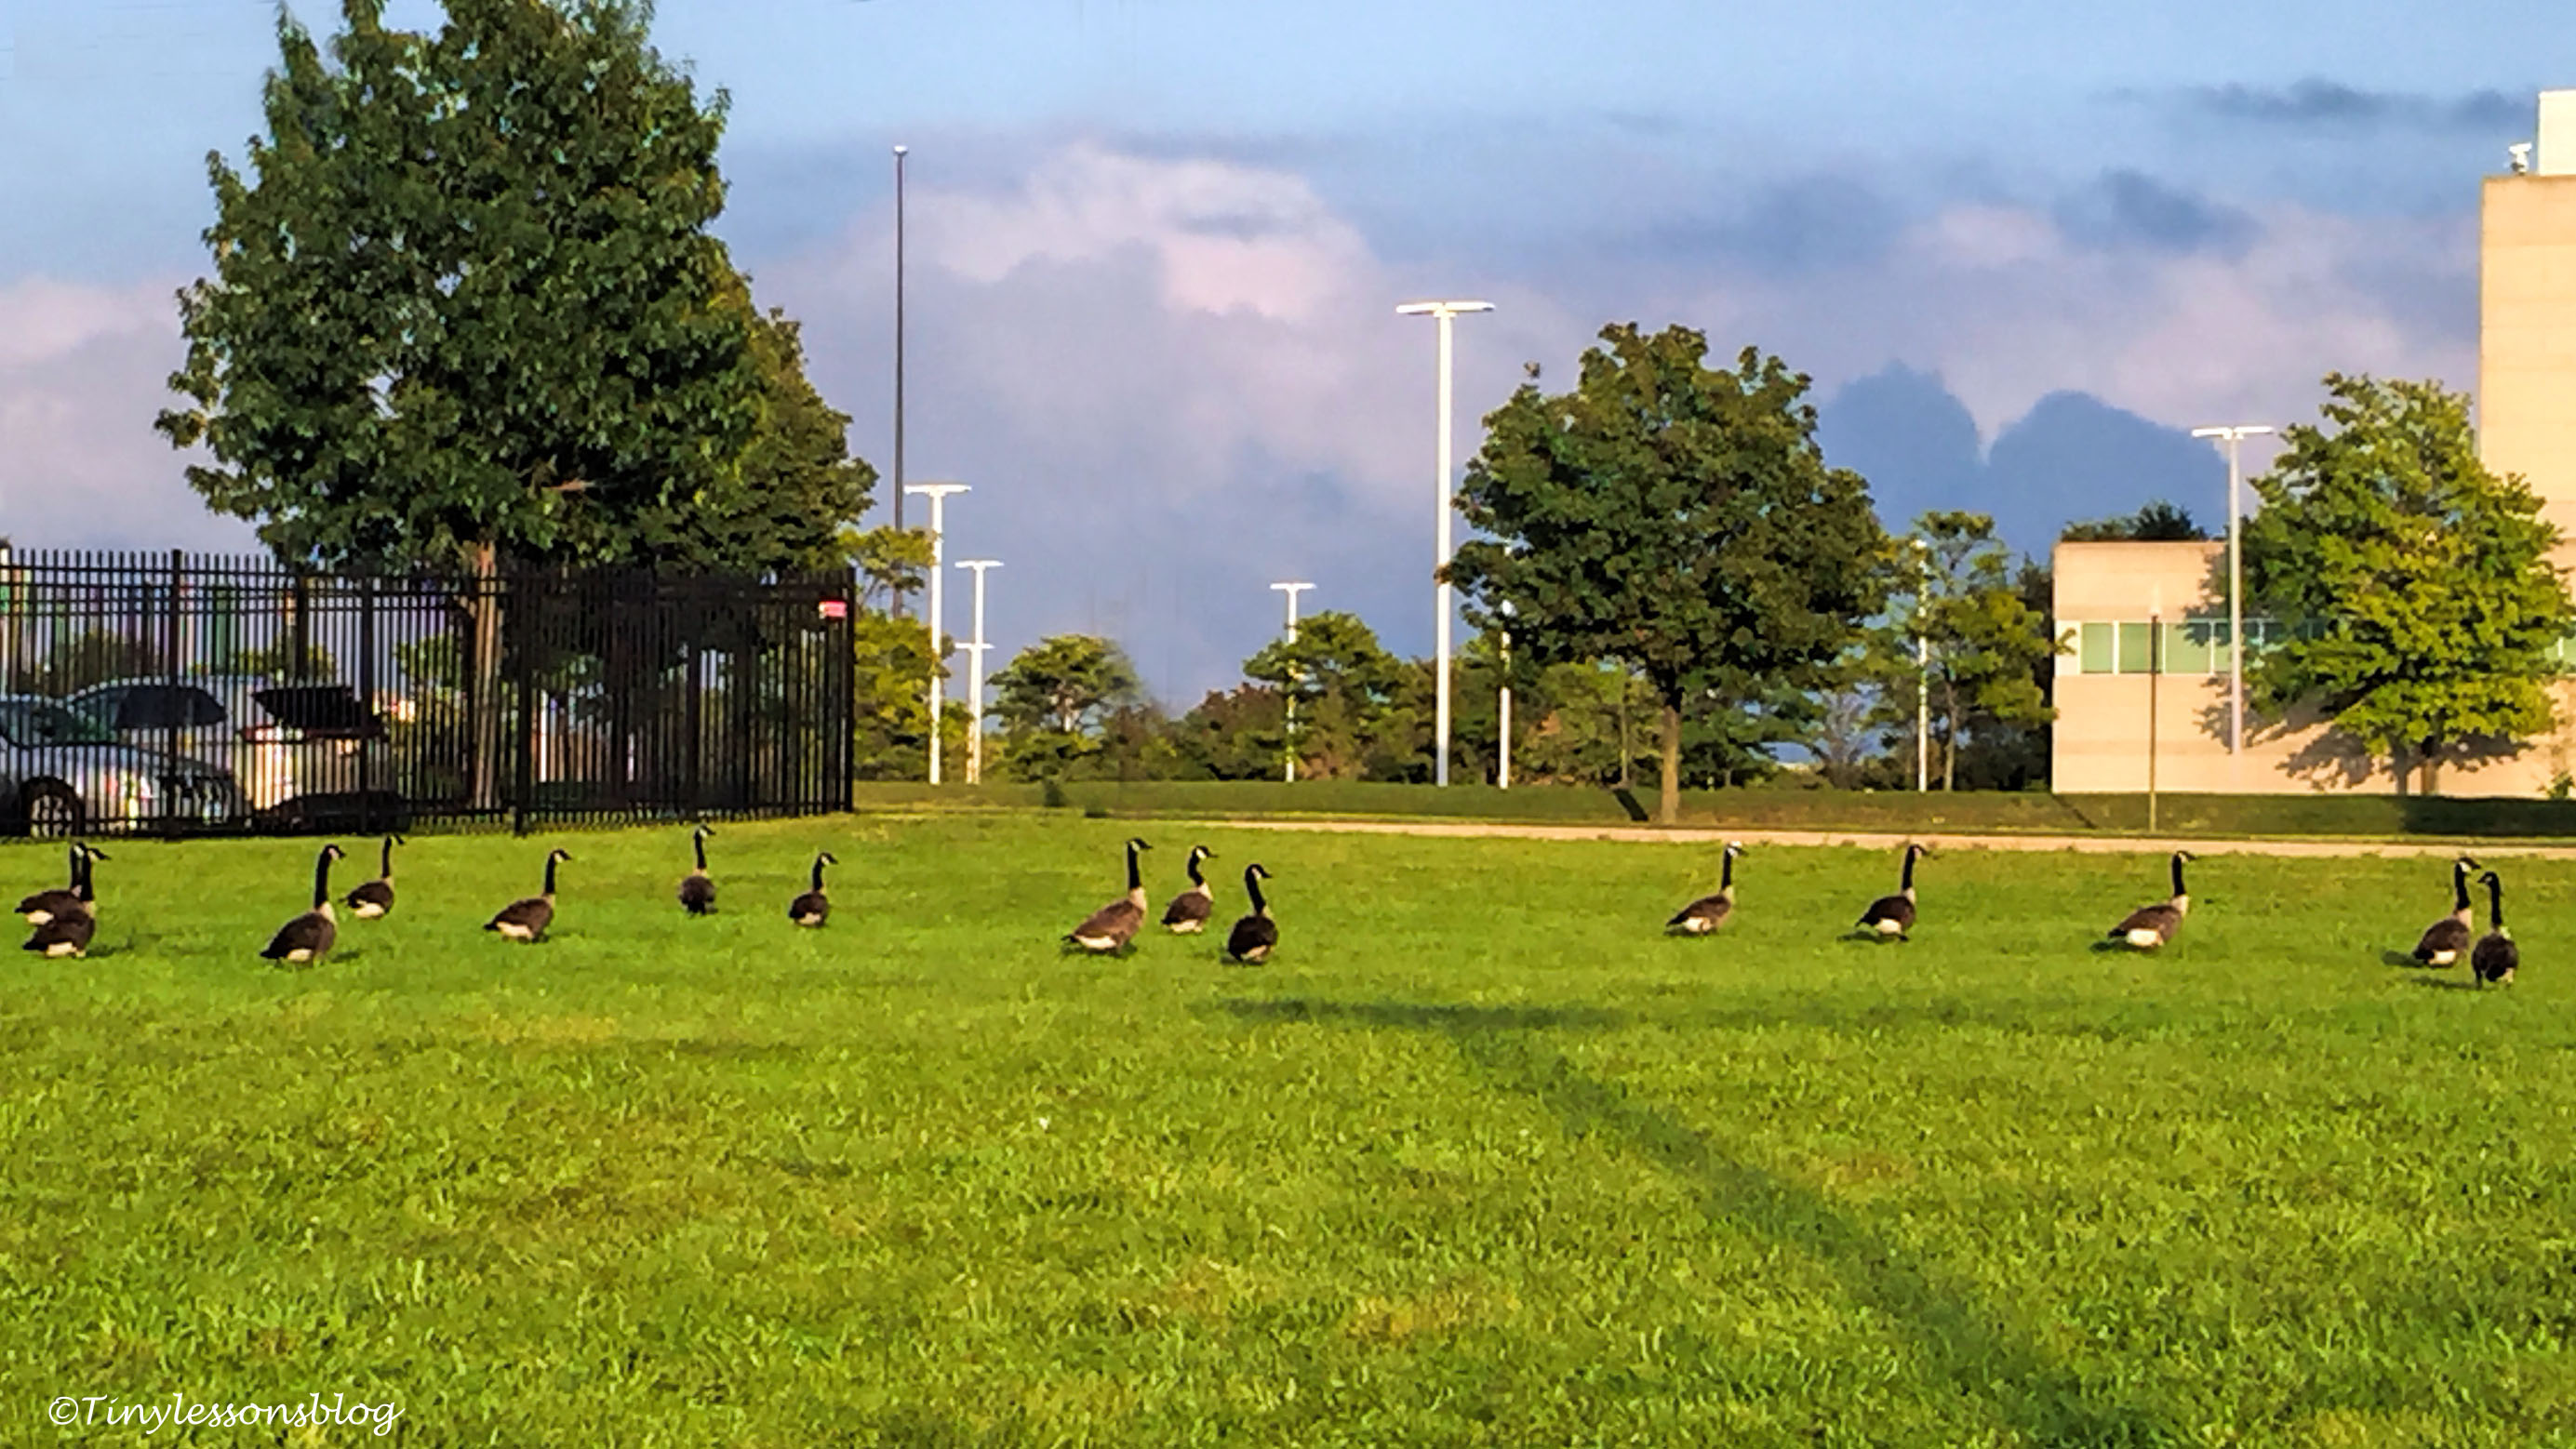 Canada geese in Philly_edited-1